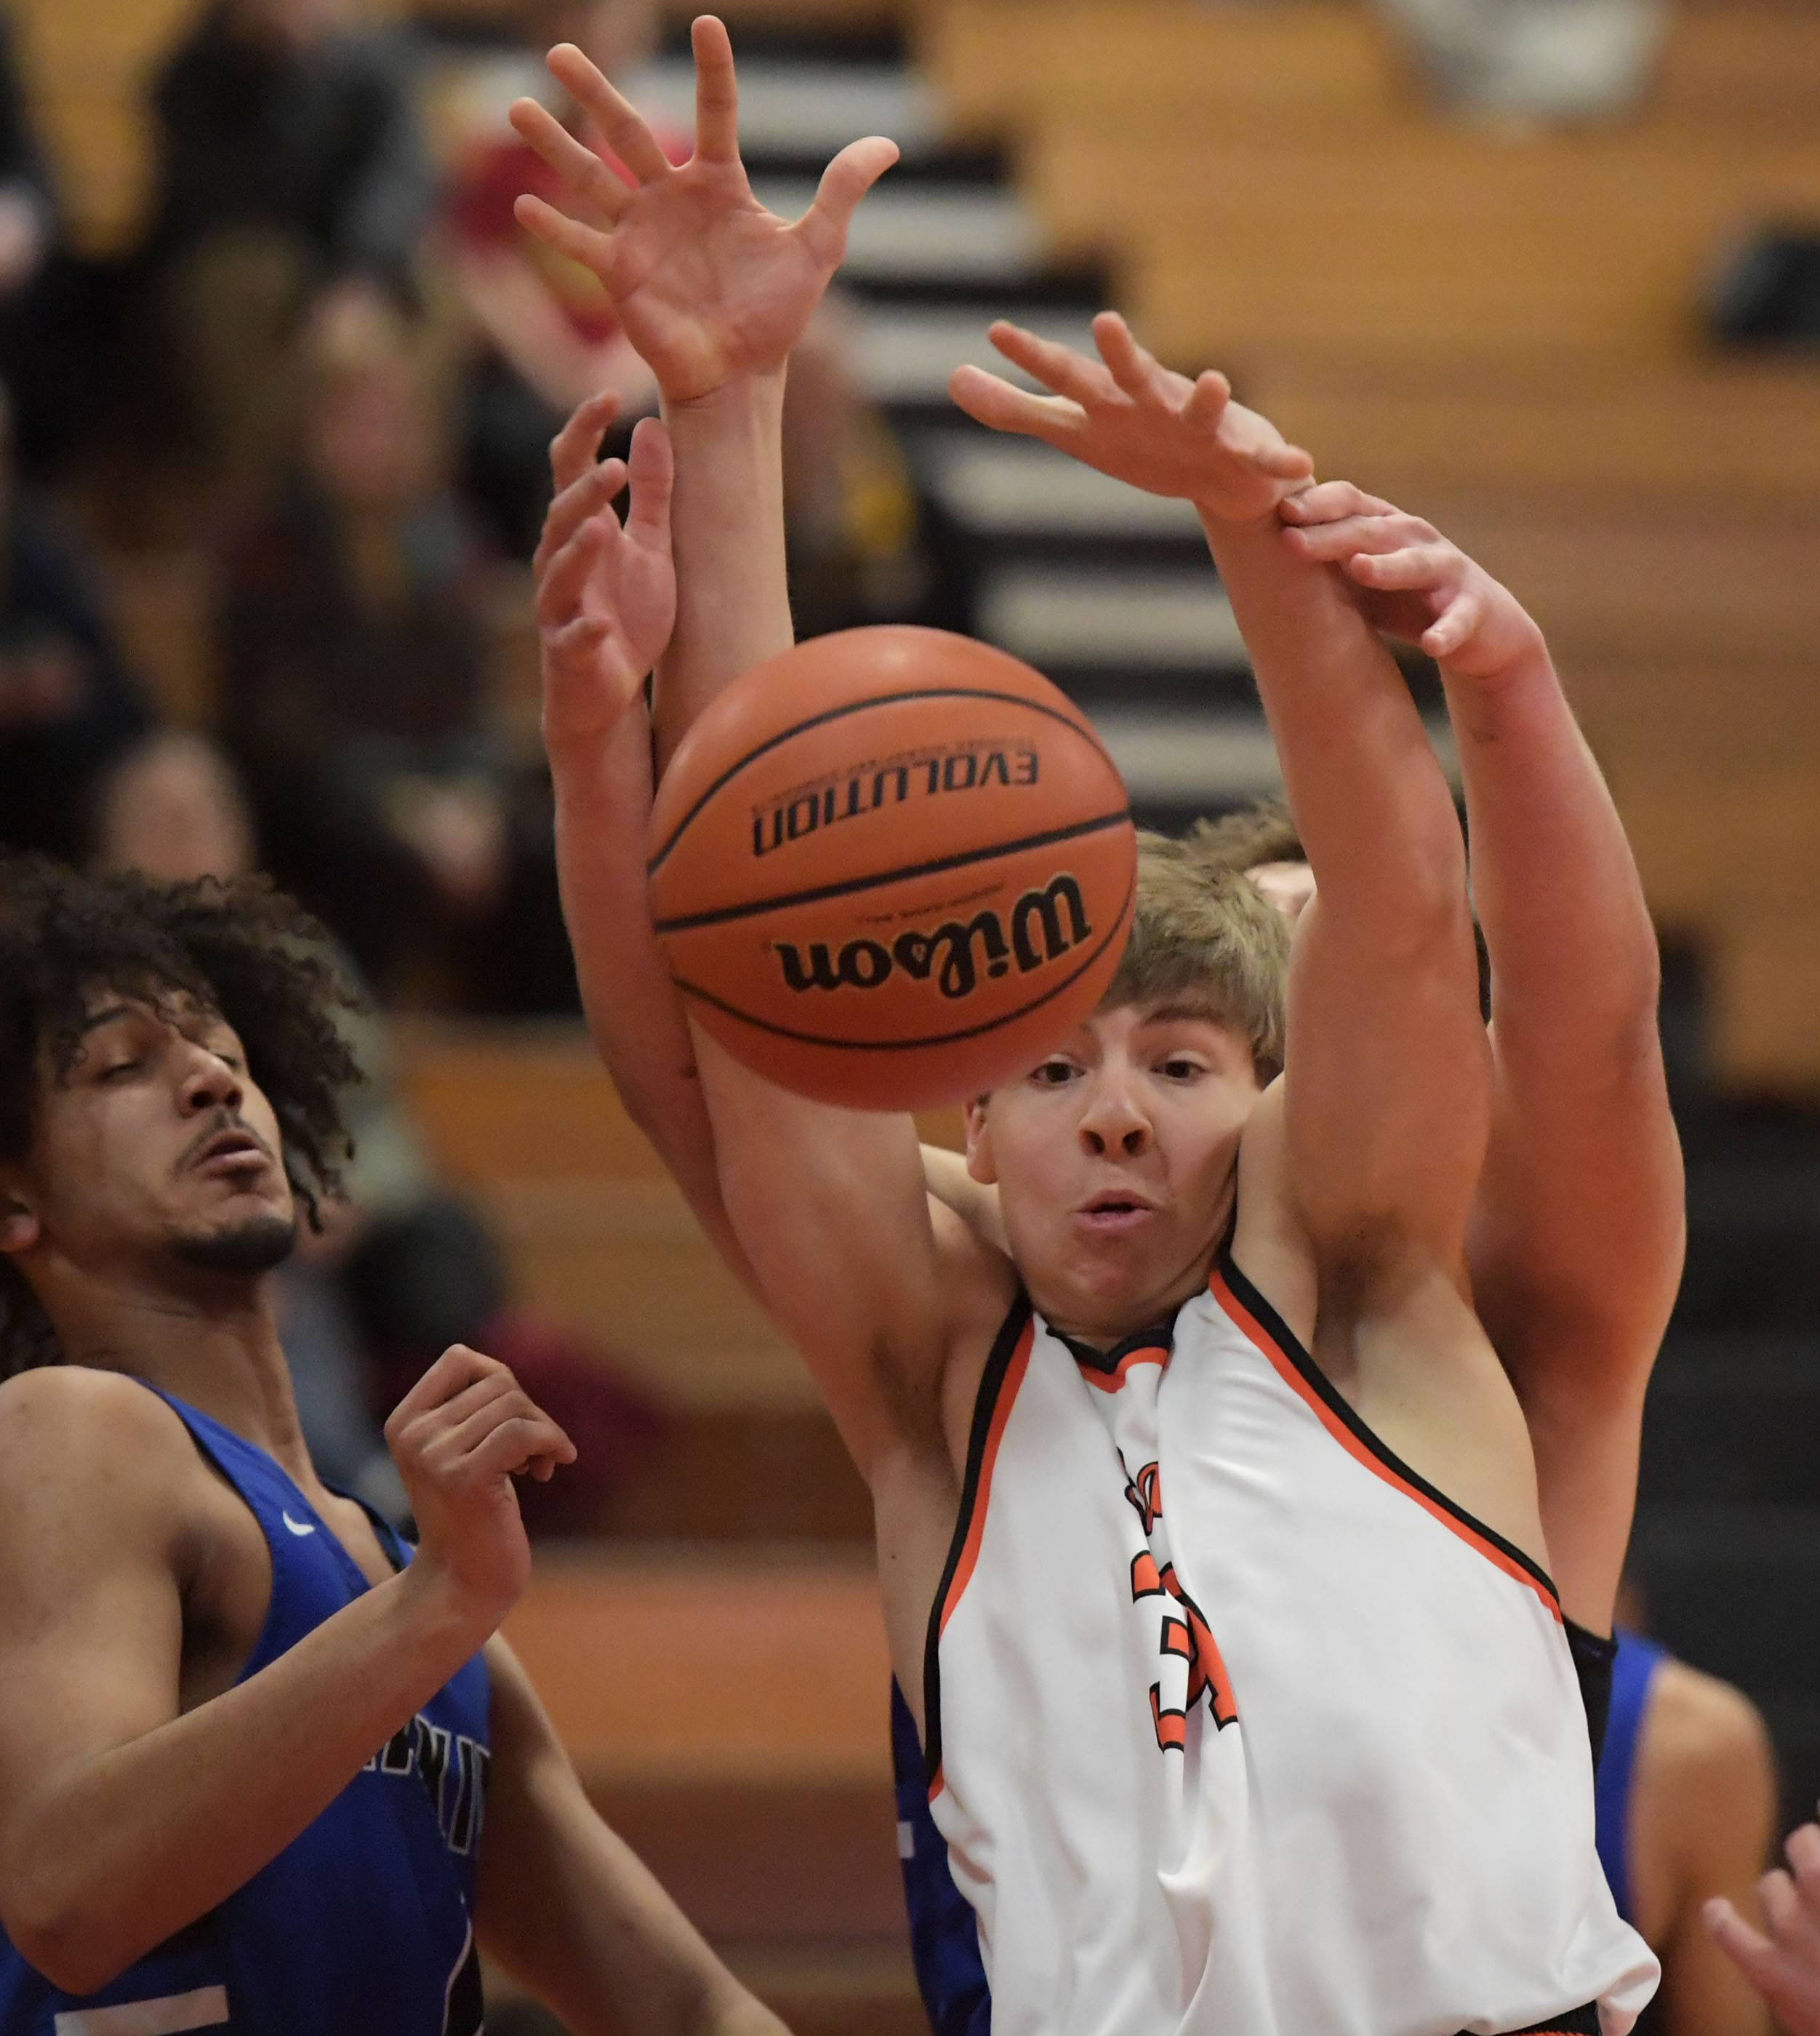 St. Charles East's Aidan Sullivan and Larkin's Max Wiskirchen compete for a rebound Thursday in a boys basketball game in St. Charles.